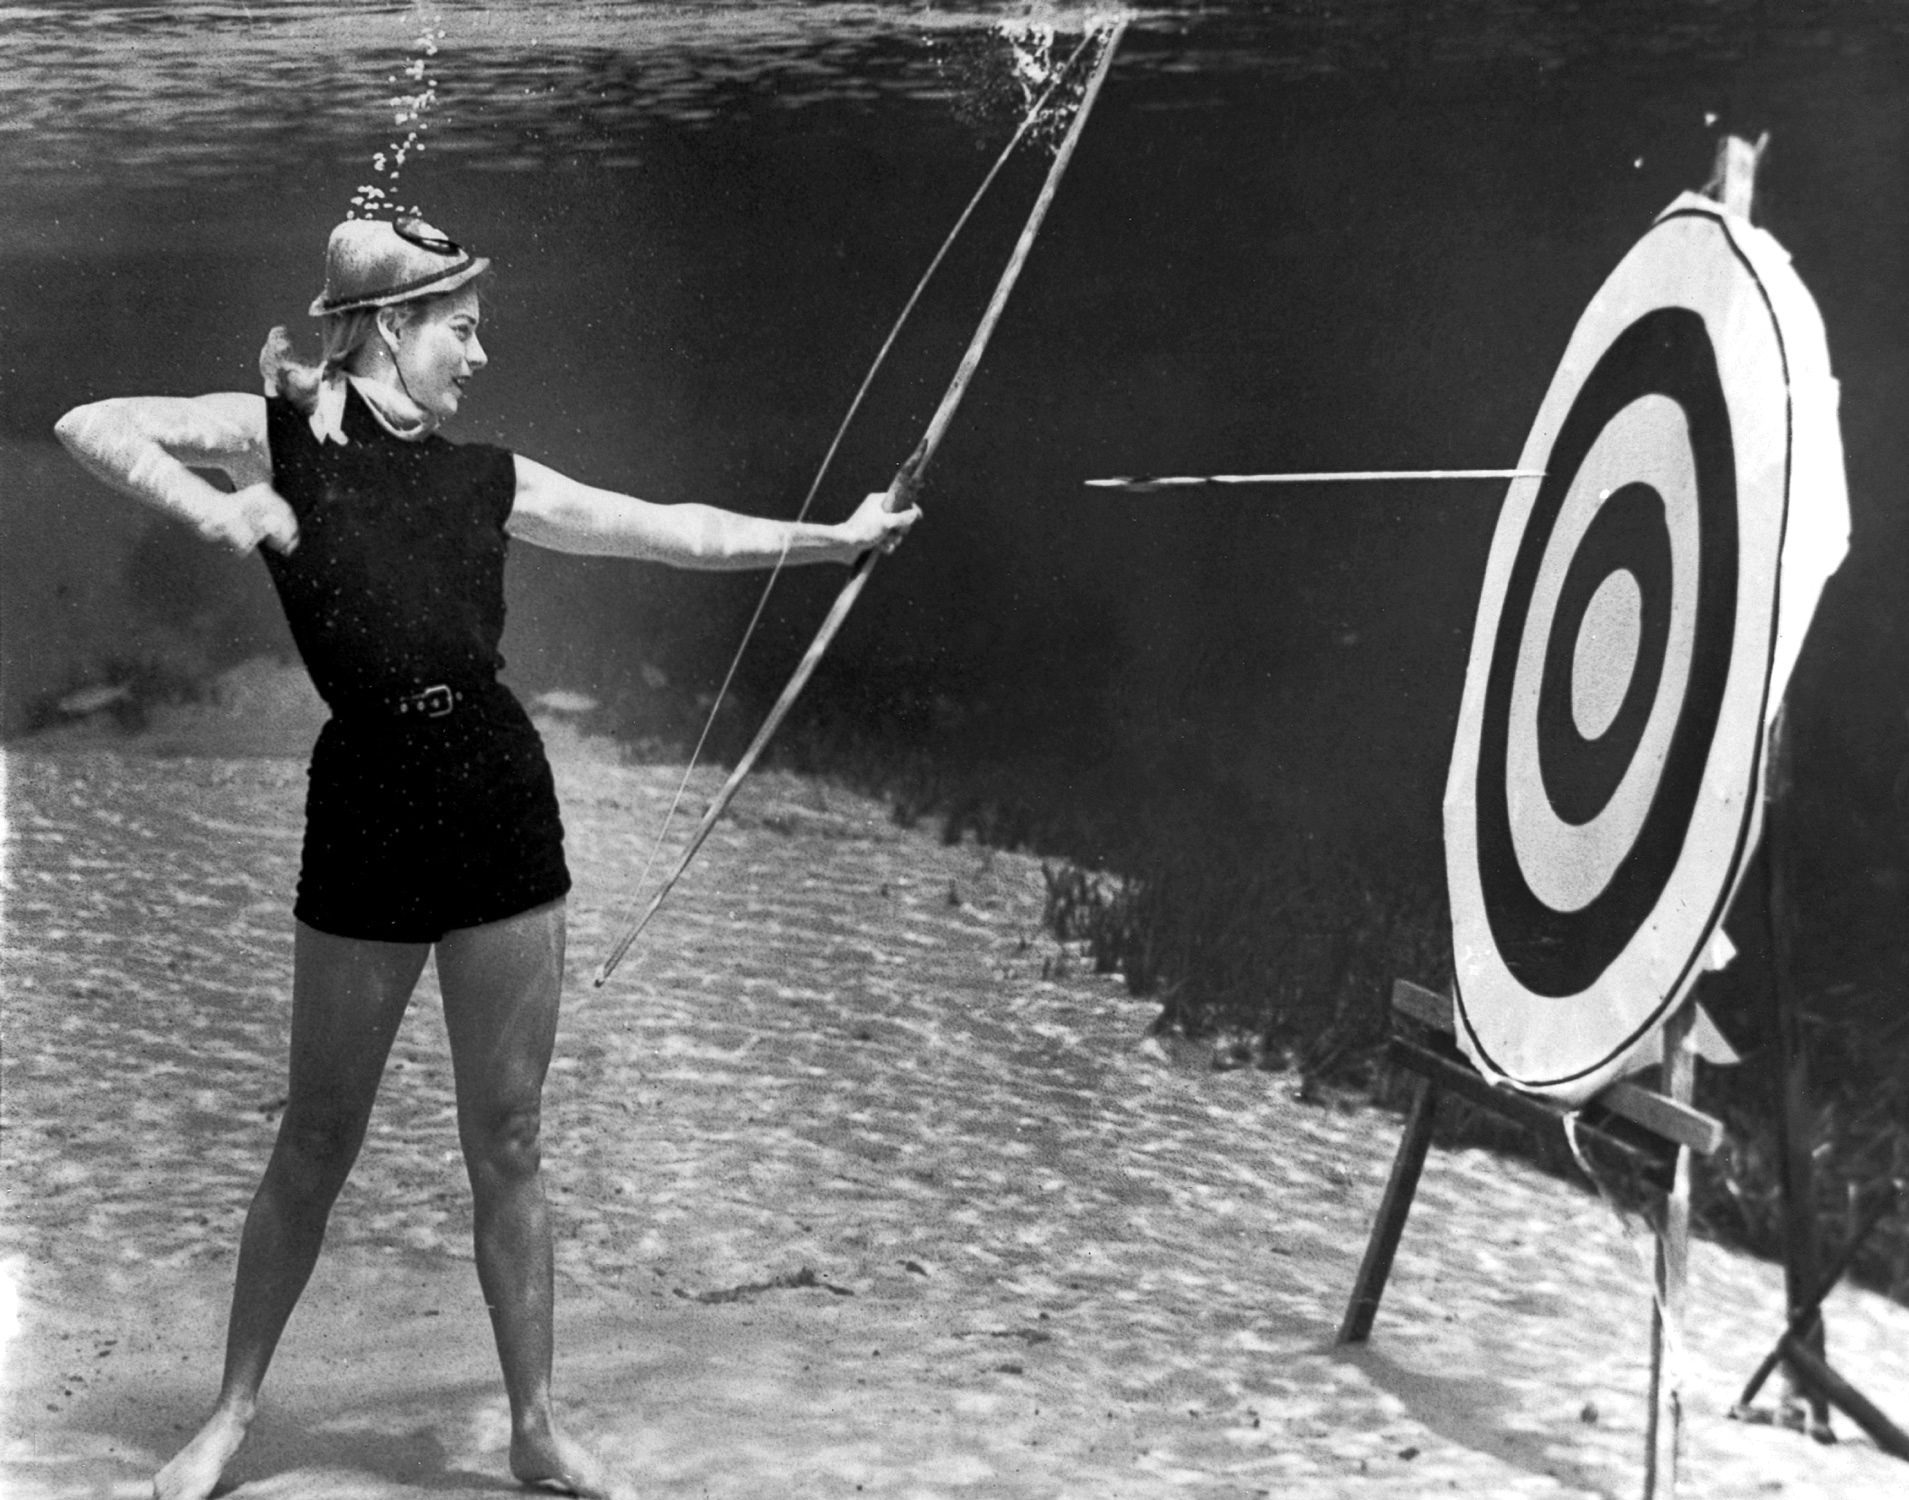 Silver Springs Underwater (Archery Action)